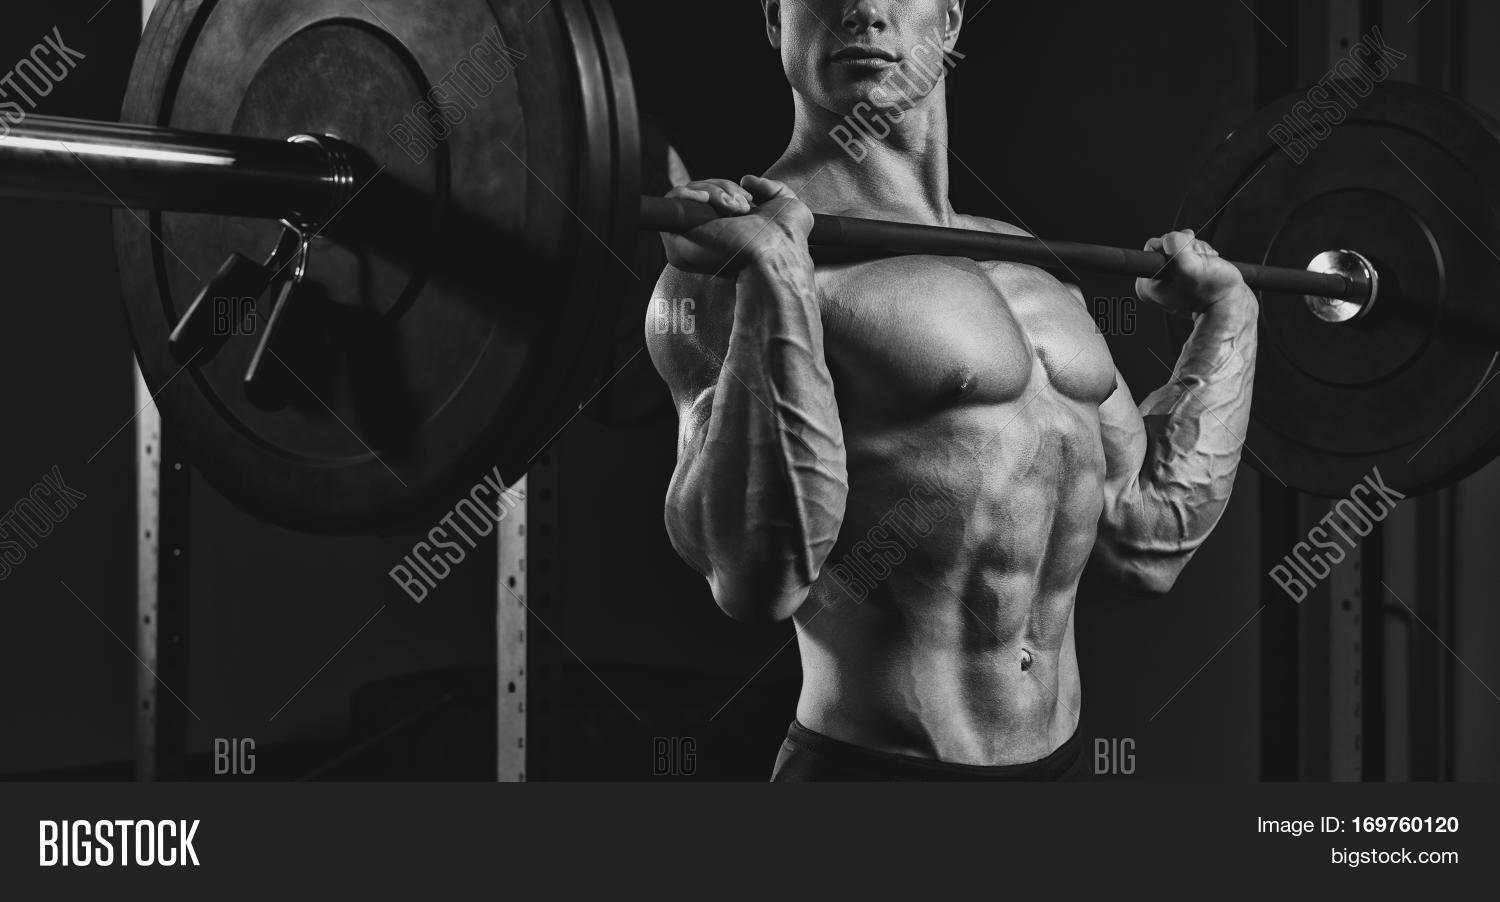 Black and white close up photo of man doing a lifting workout on dark background at